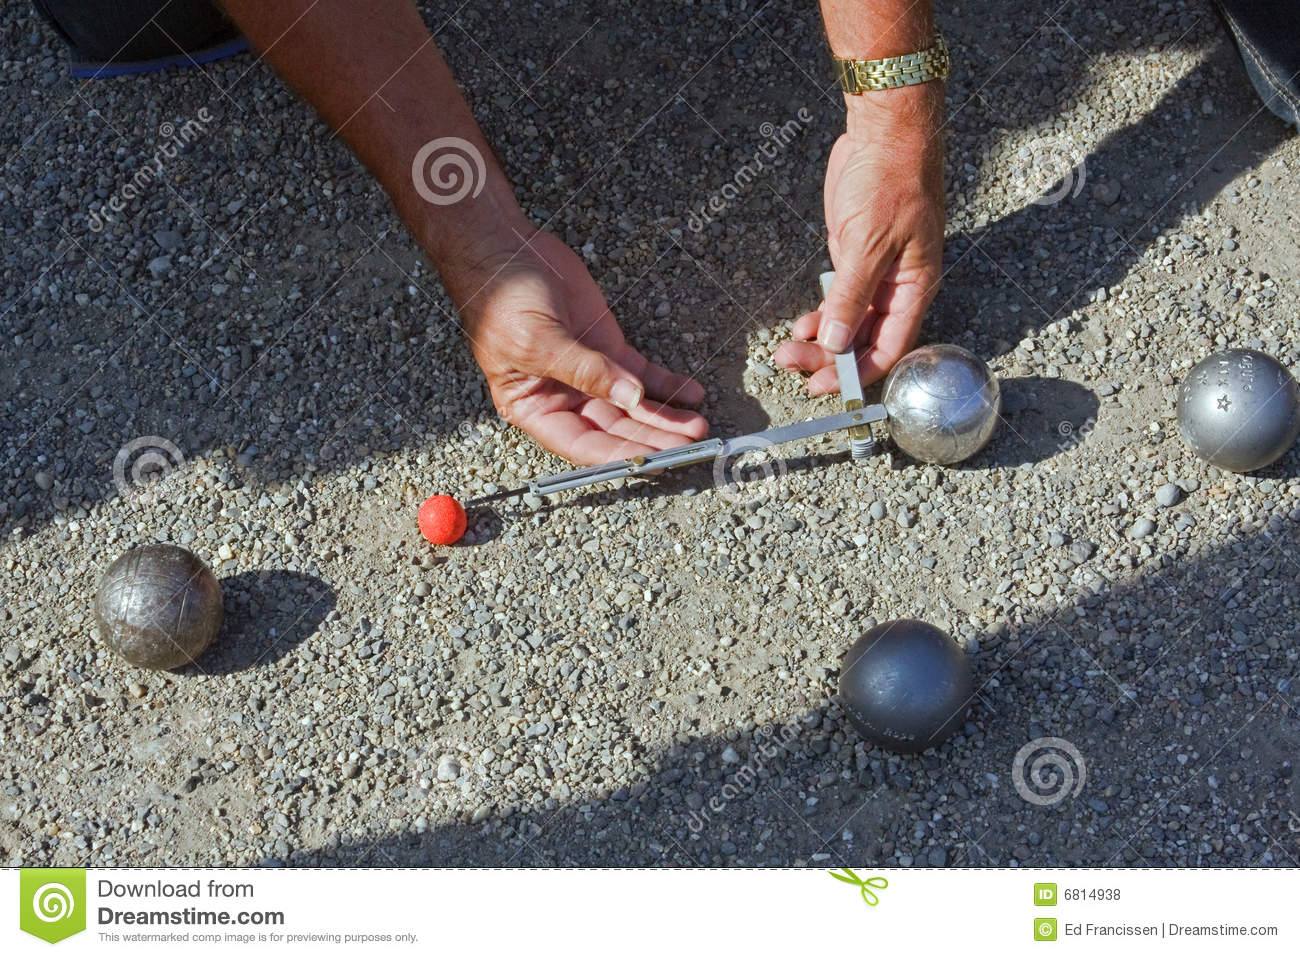 Jeu de boules or petanque royalty free stock photos for Boule deboule le jeu